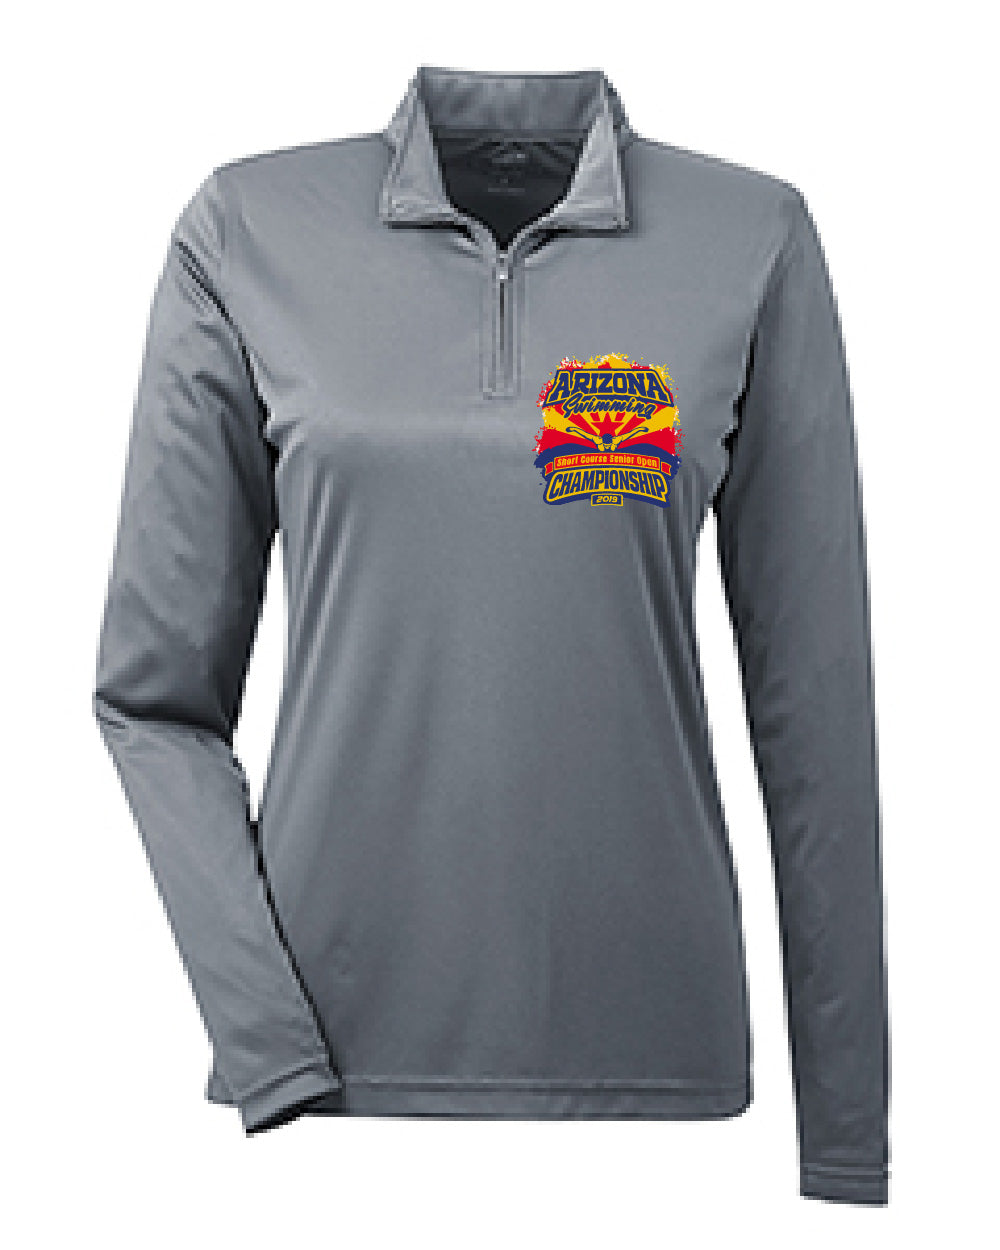 Arizona Ladies Performance Quarter-Zip Pullover